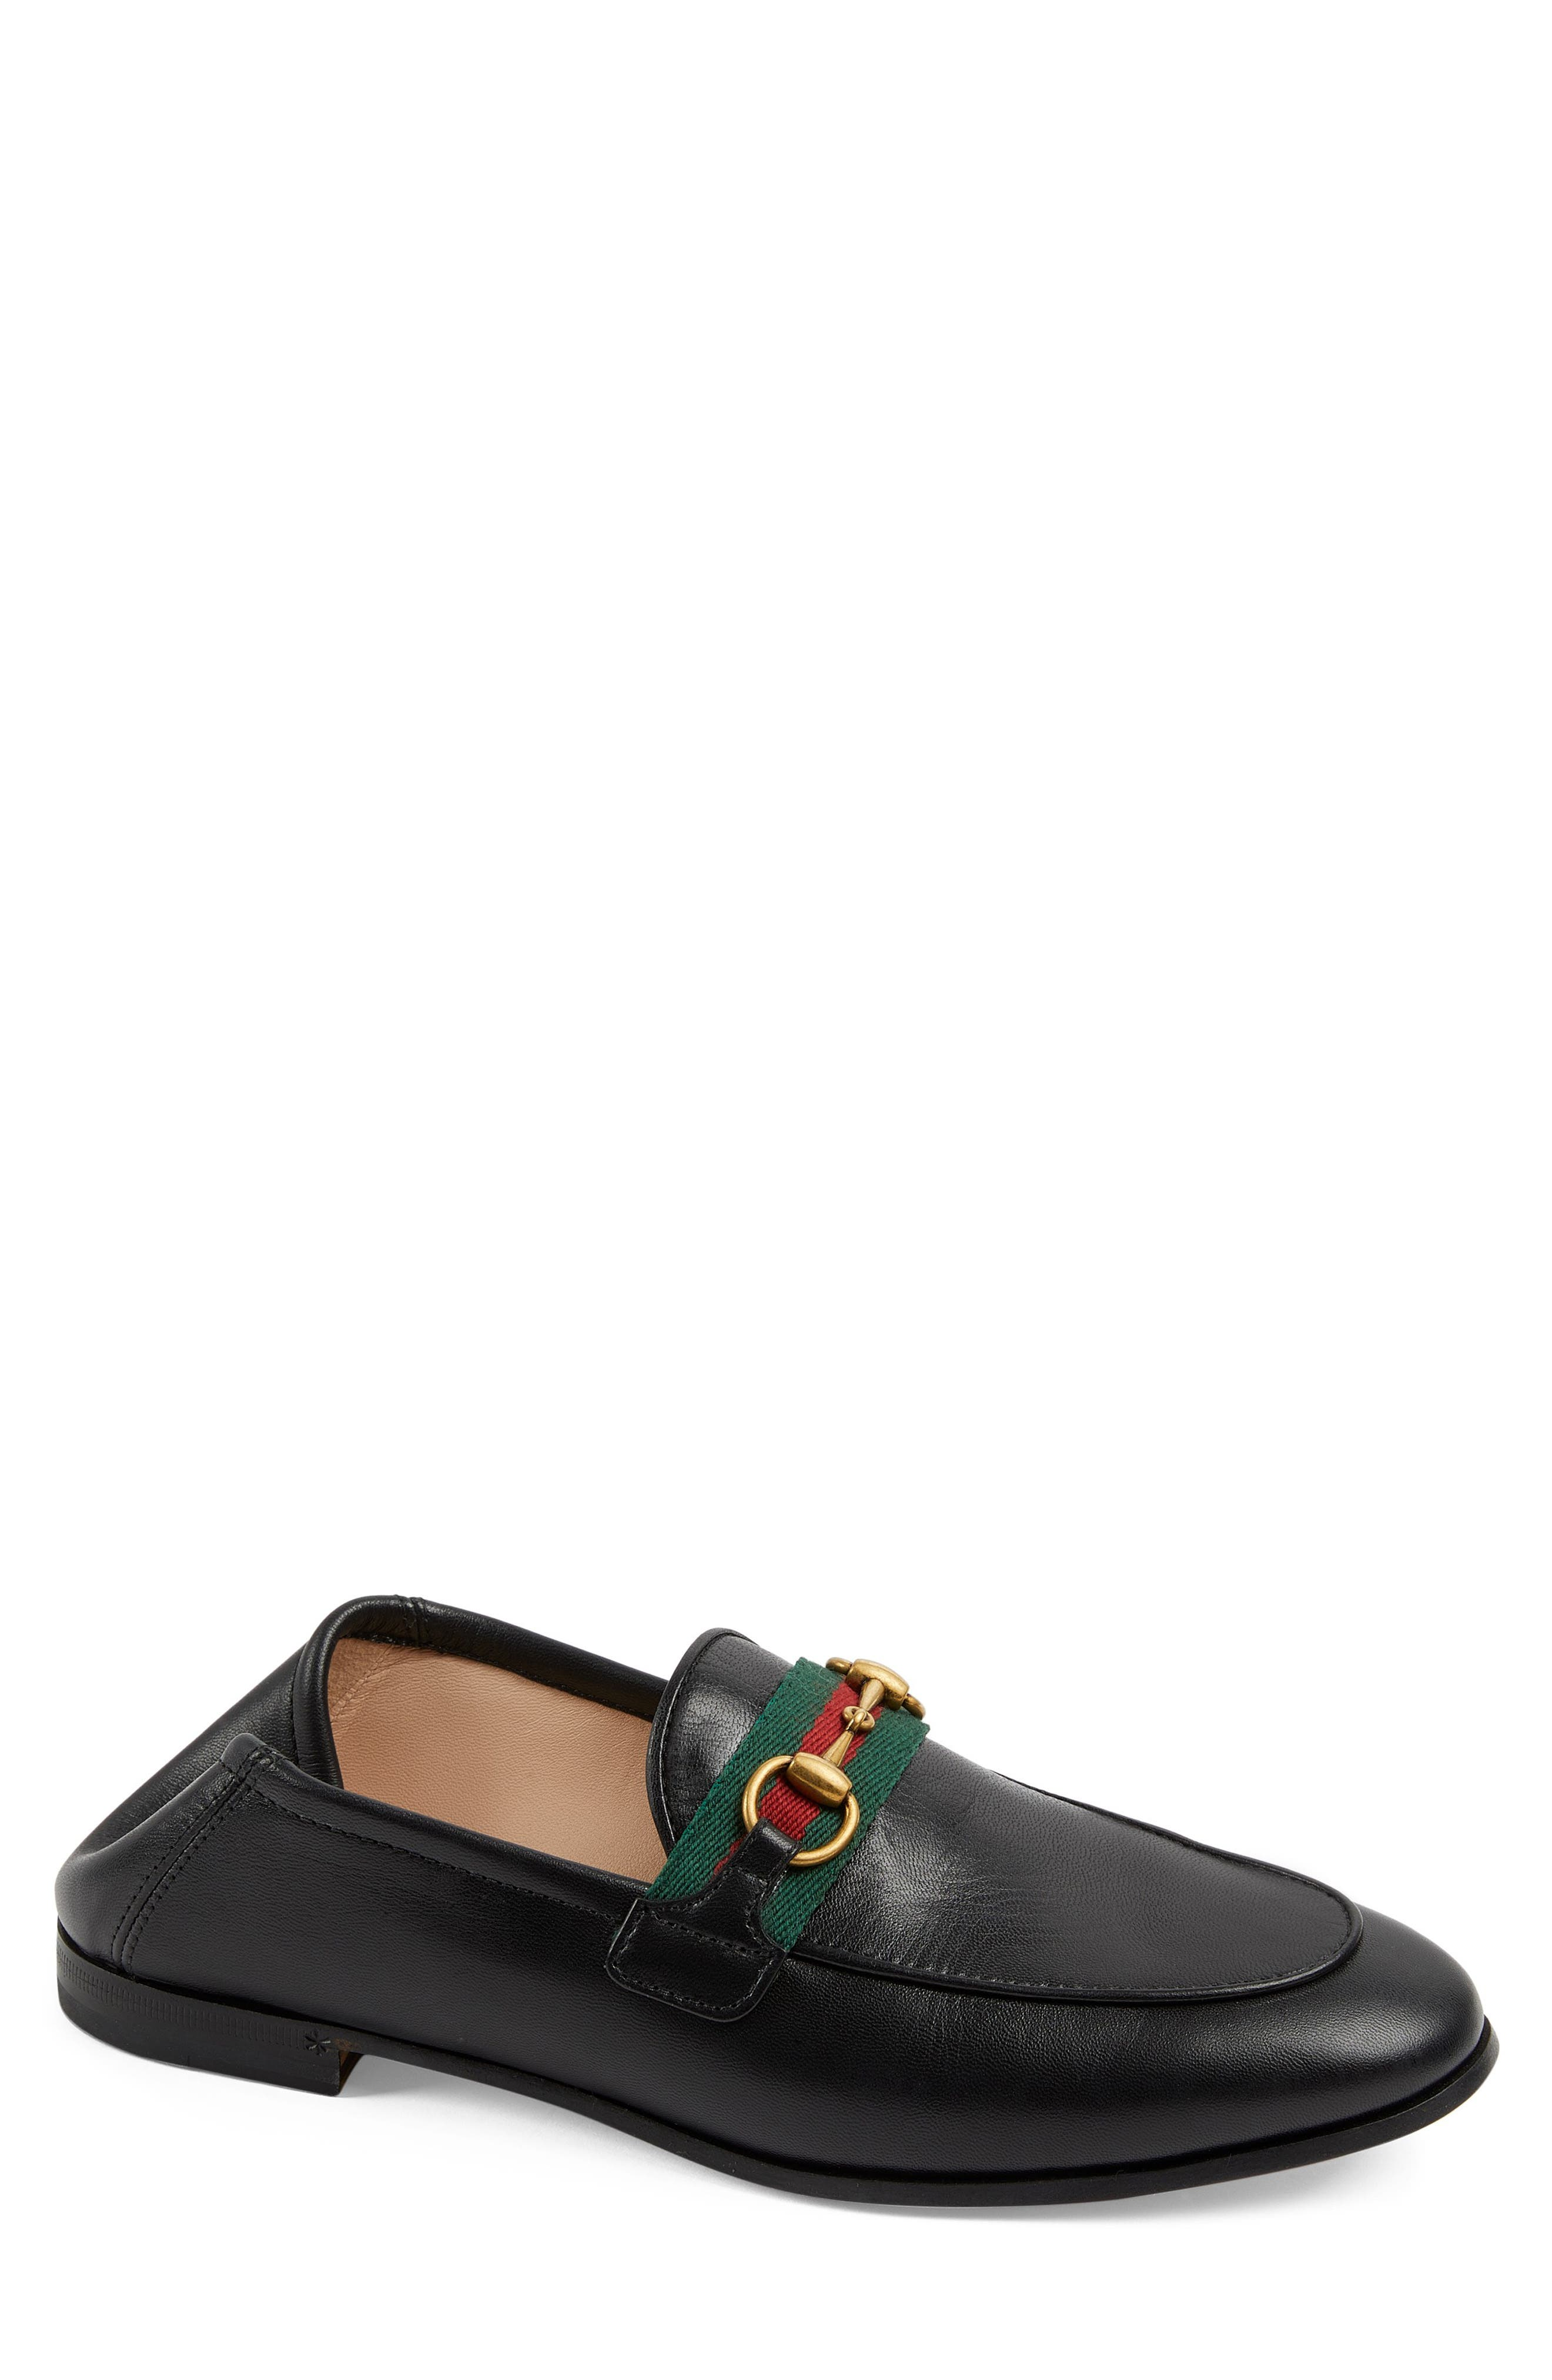 gucci loafers female